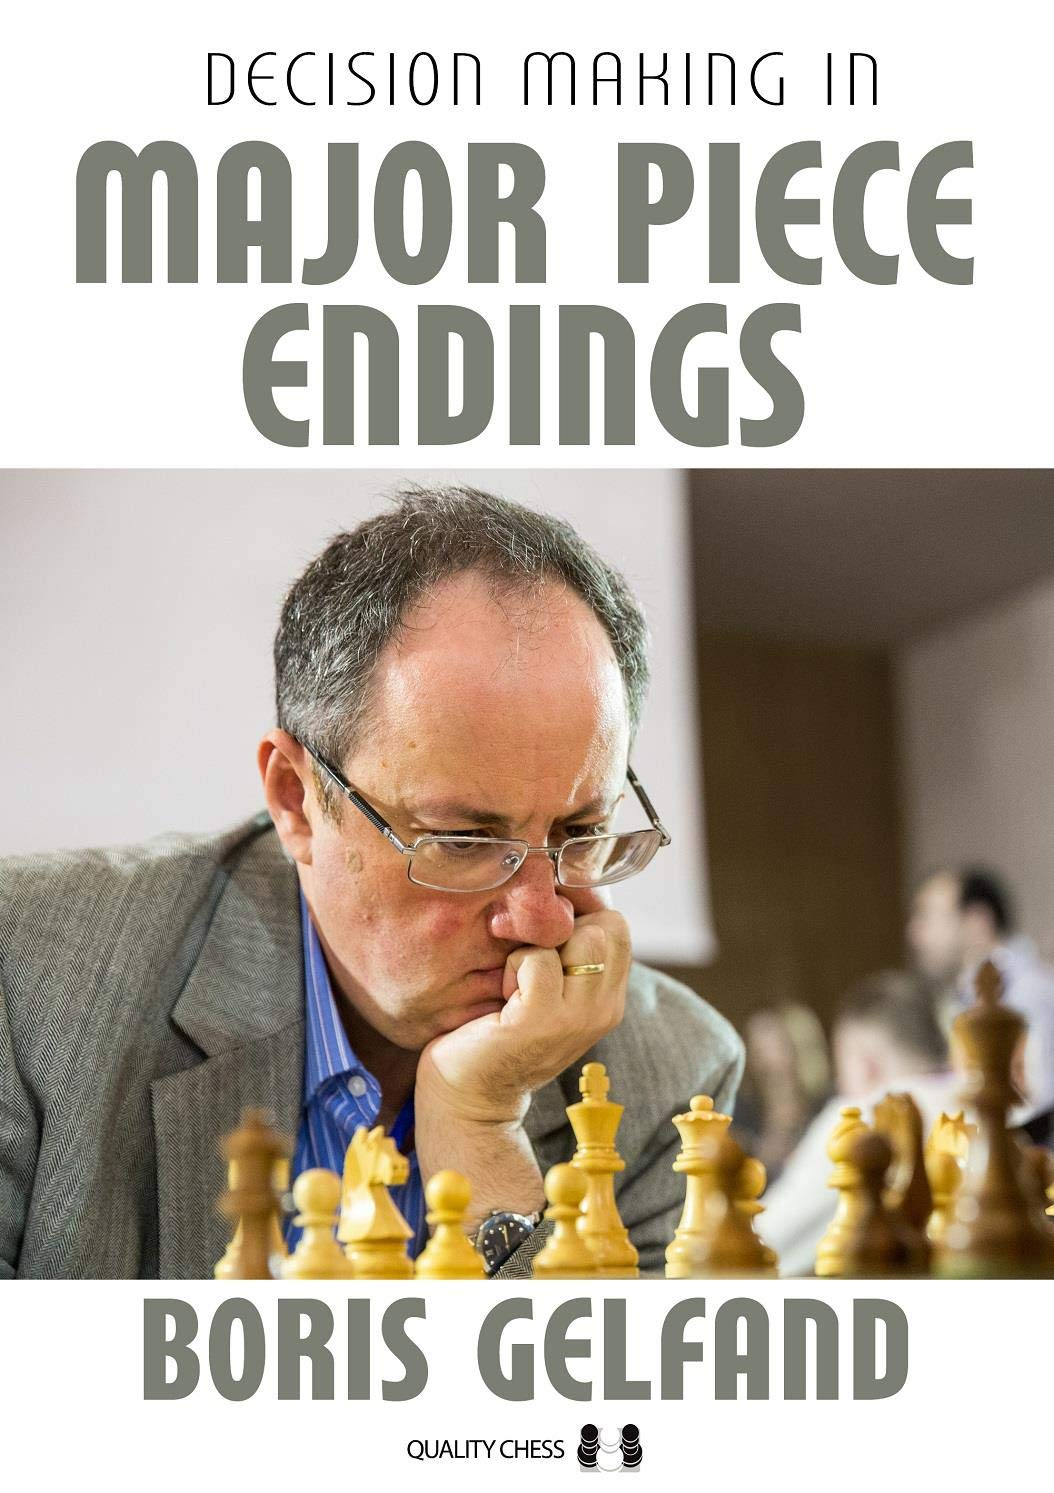 Decision Making In Major Piece Endings, Boris Gelfand, Quality Chess, 2020